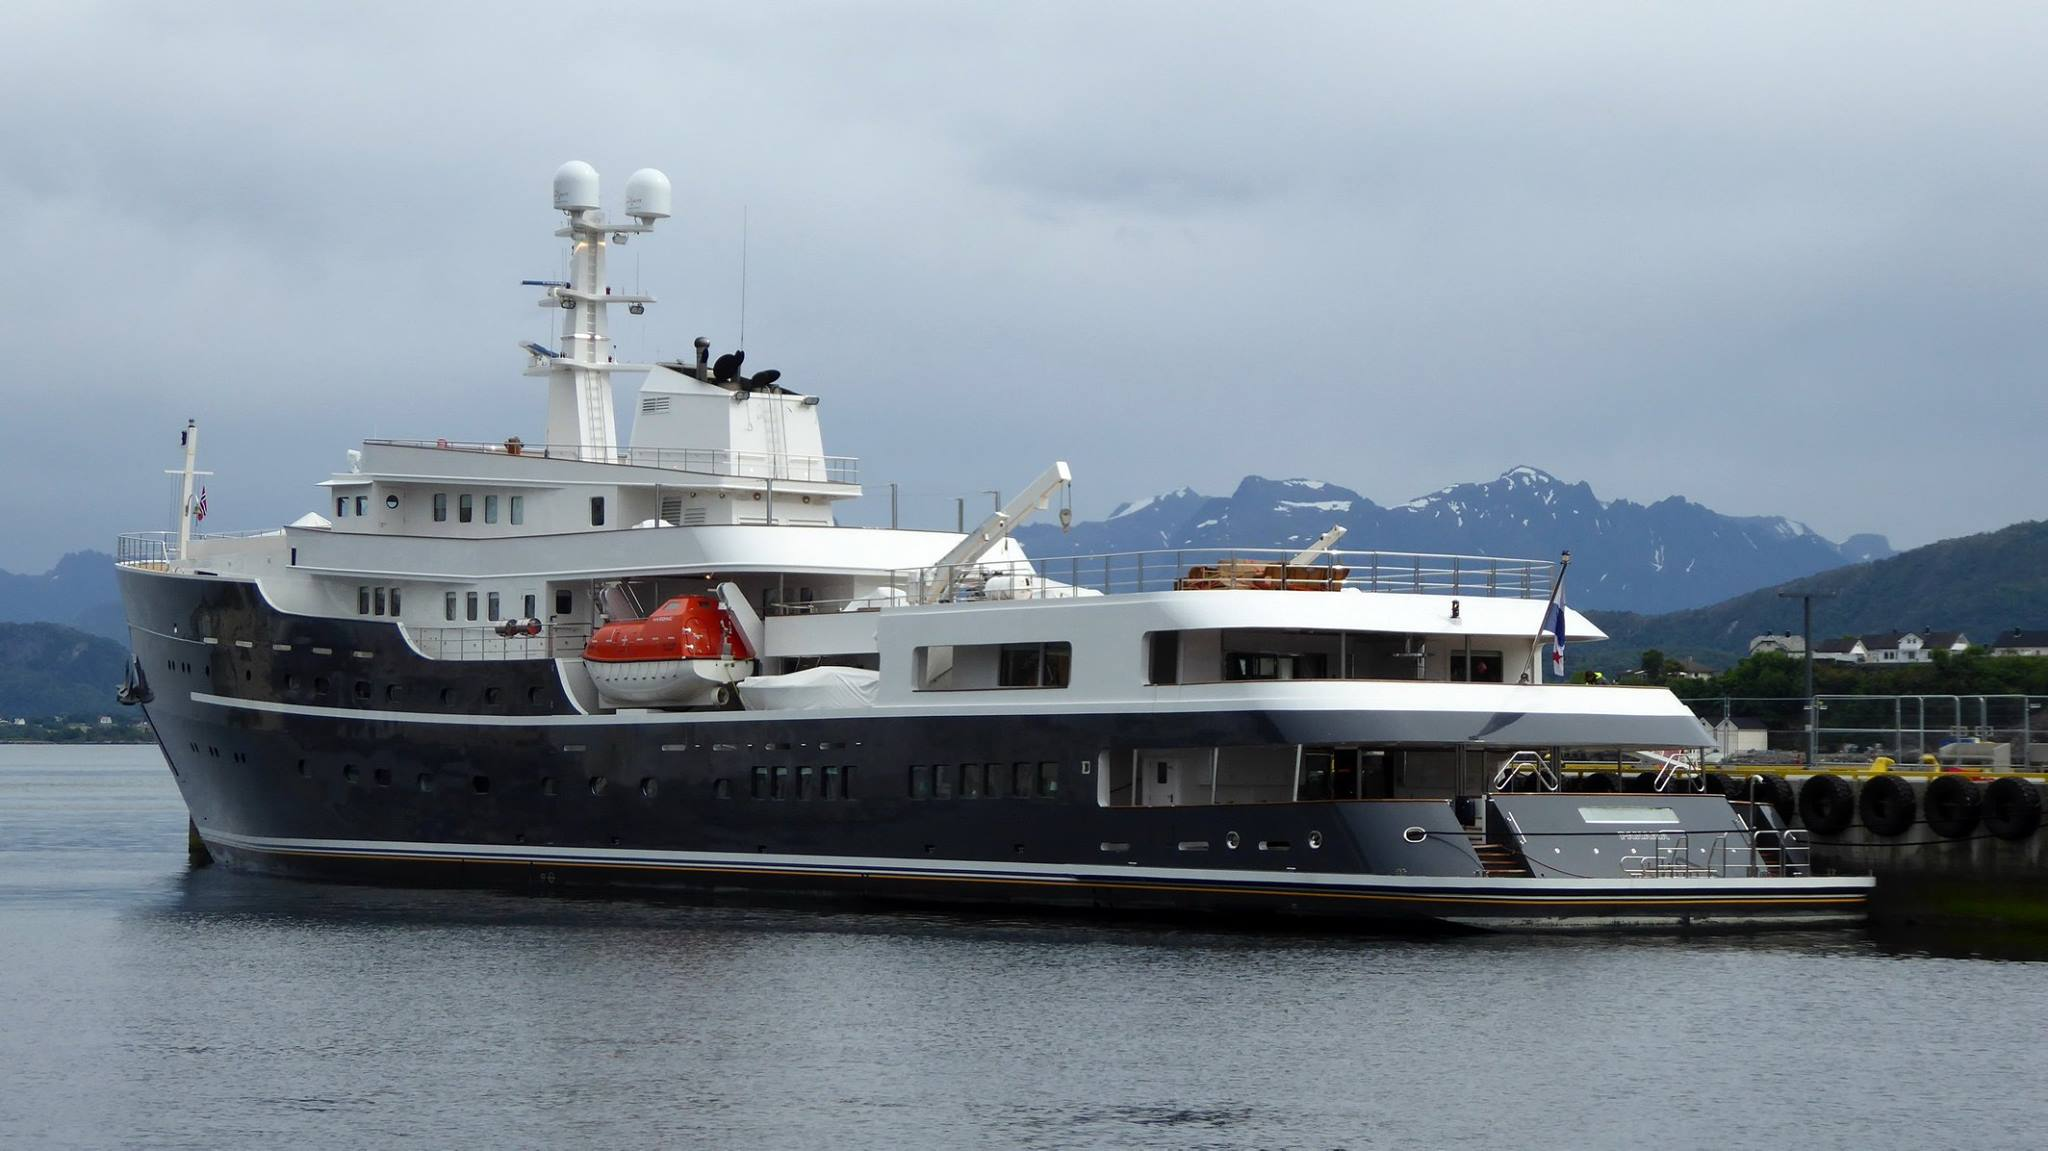 Icebreaking Explorer Yacht Legend Spotted In Norway